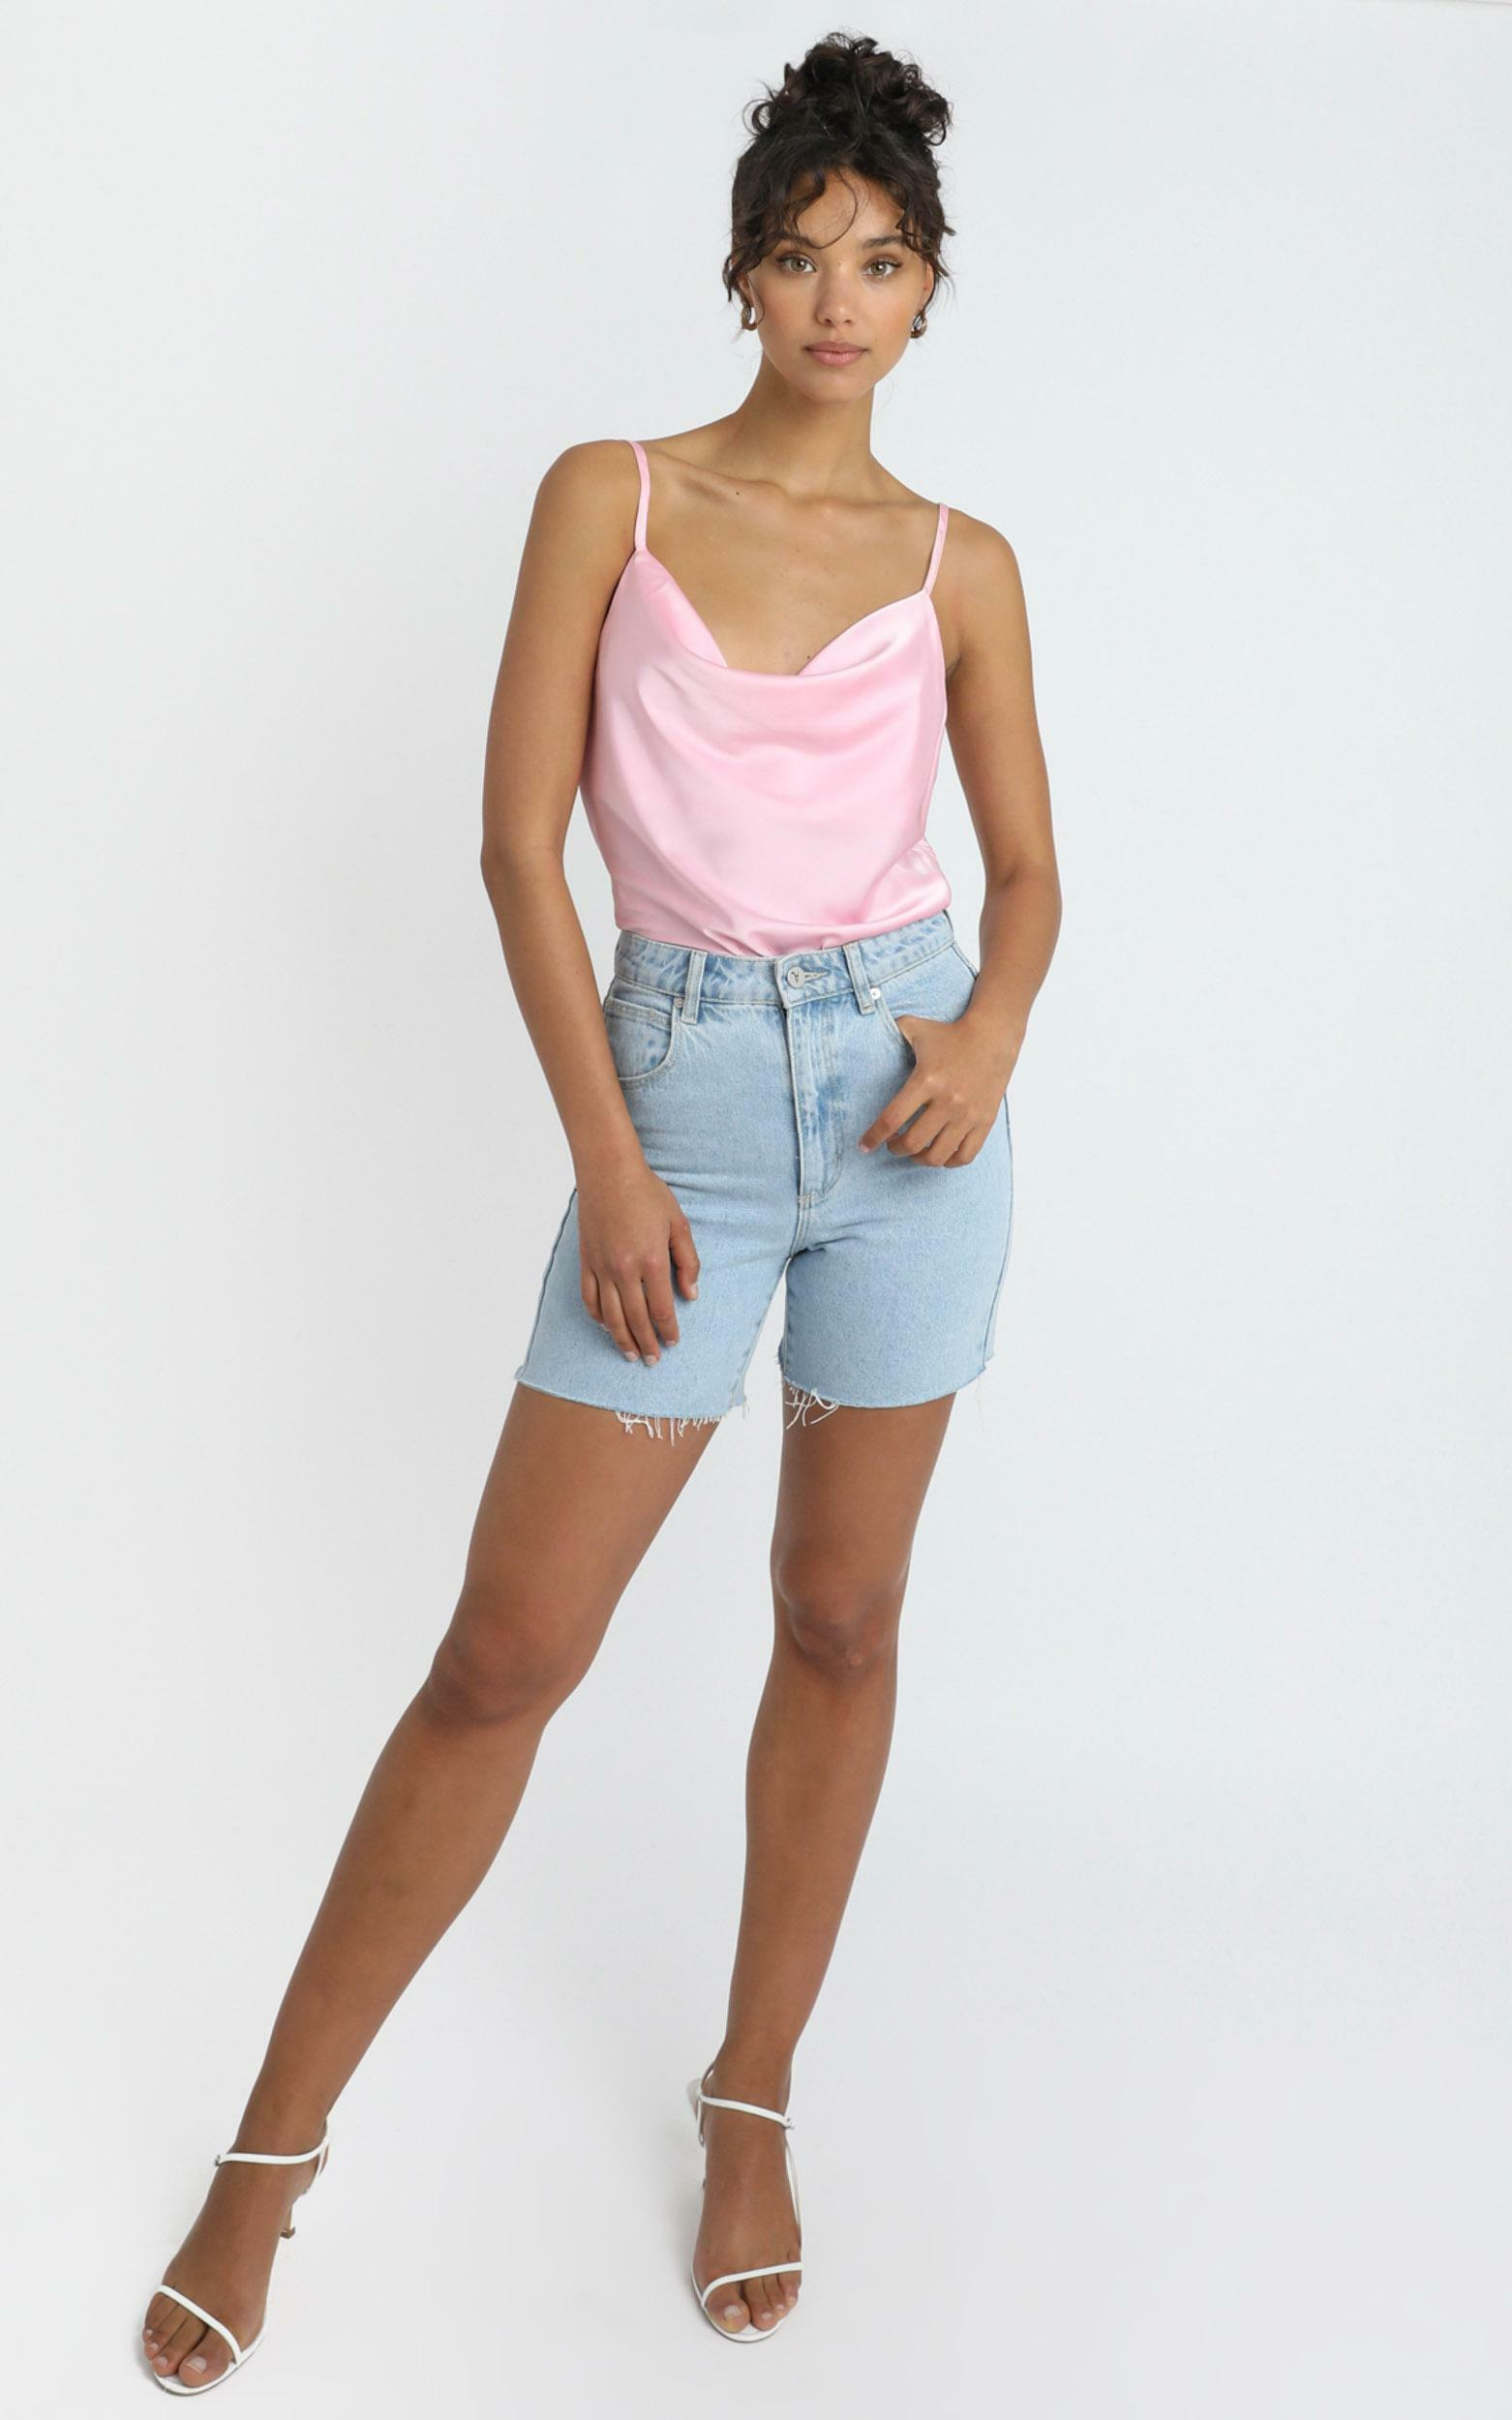 Straight Line Top in Soft Pink - 04, PNK2, hi-res image number null